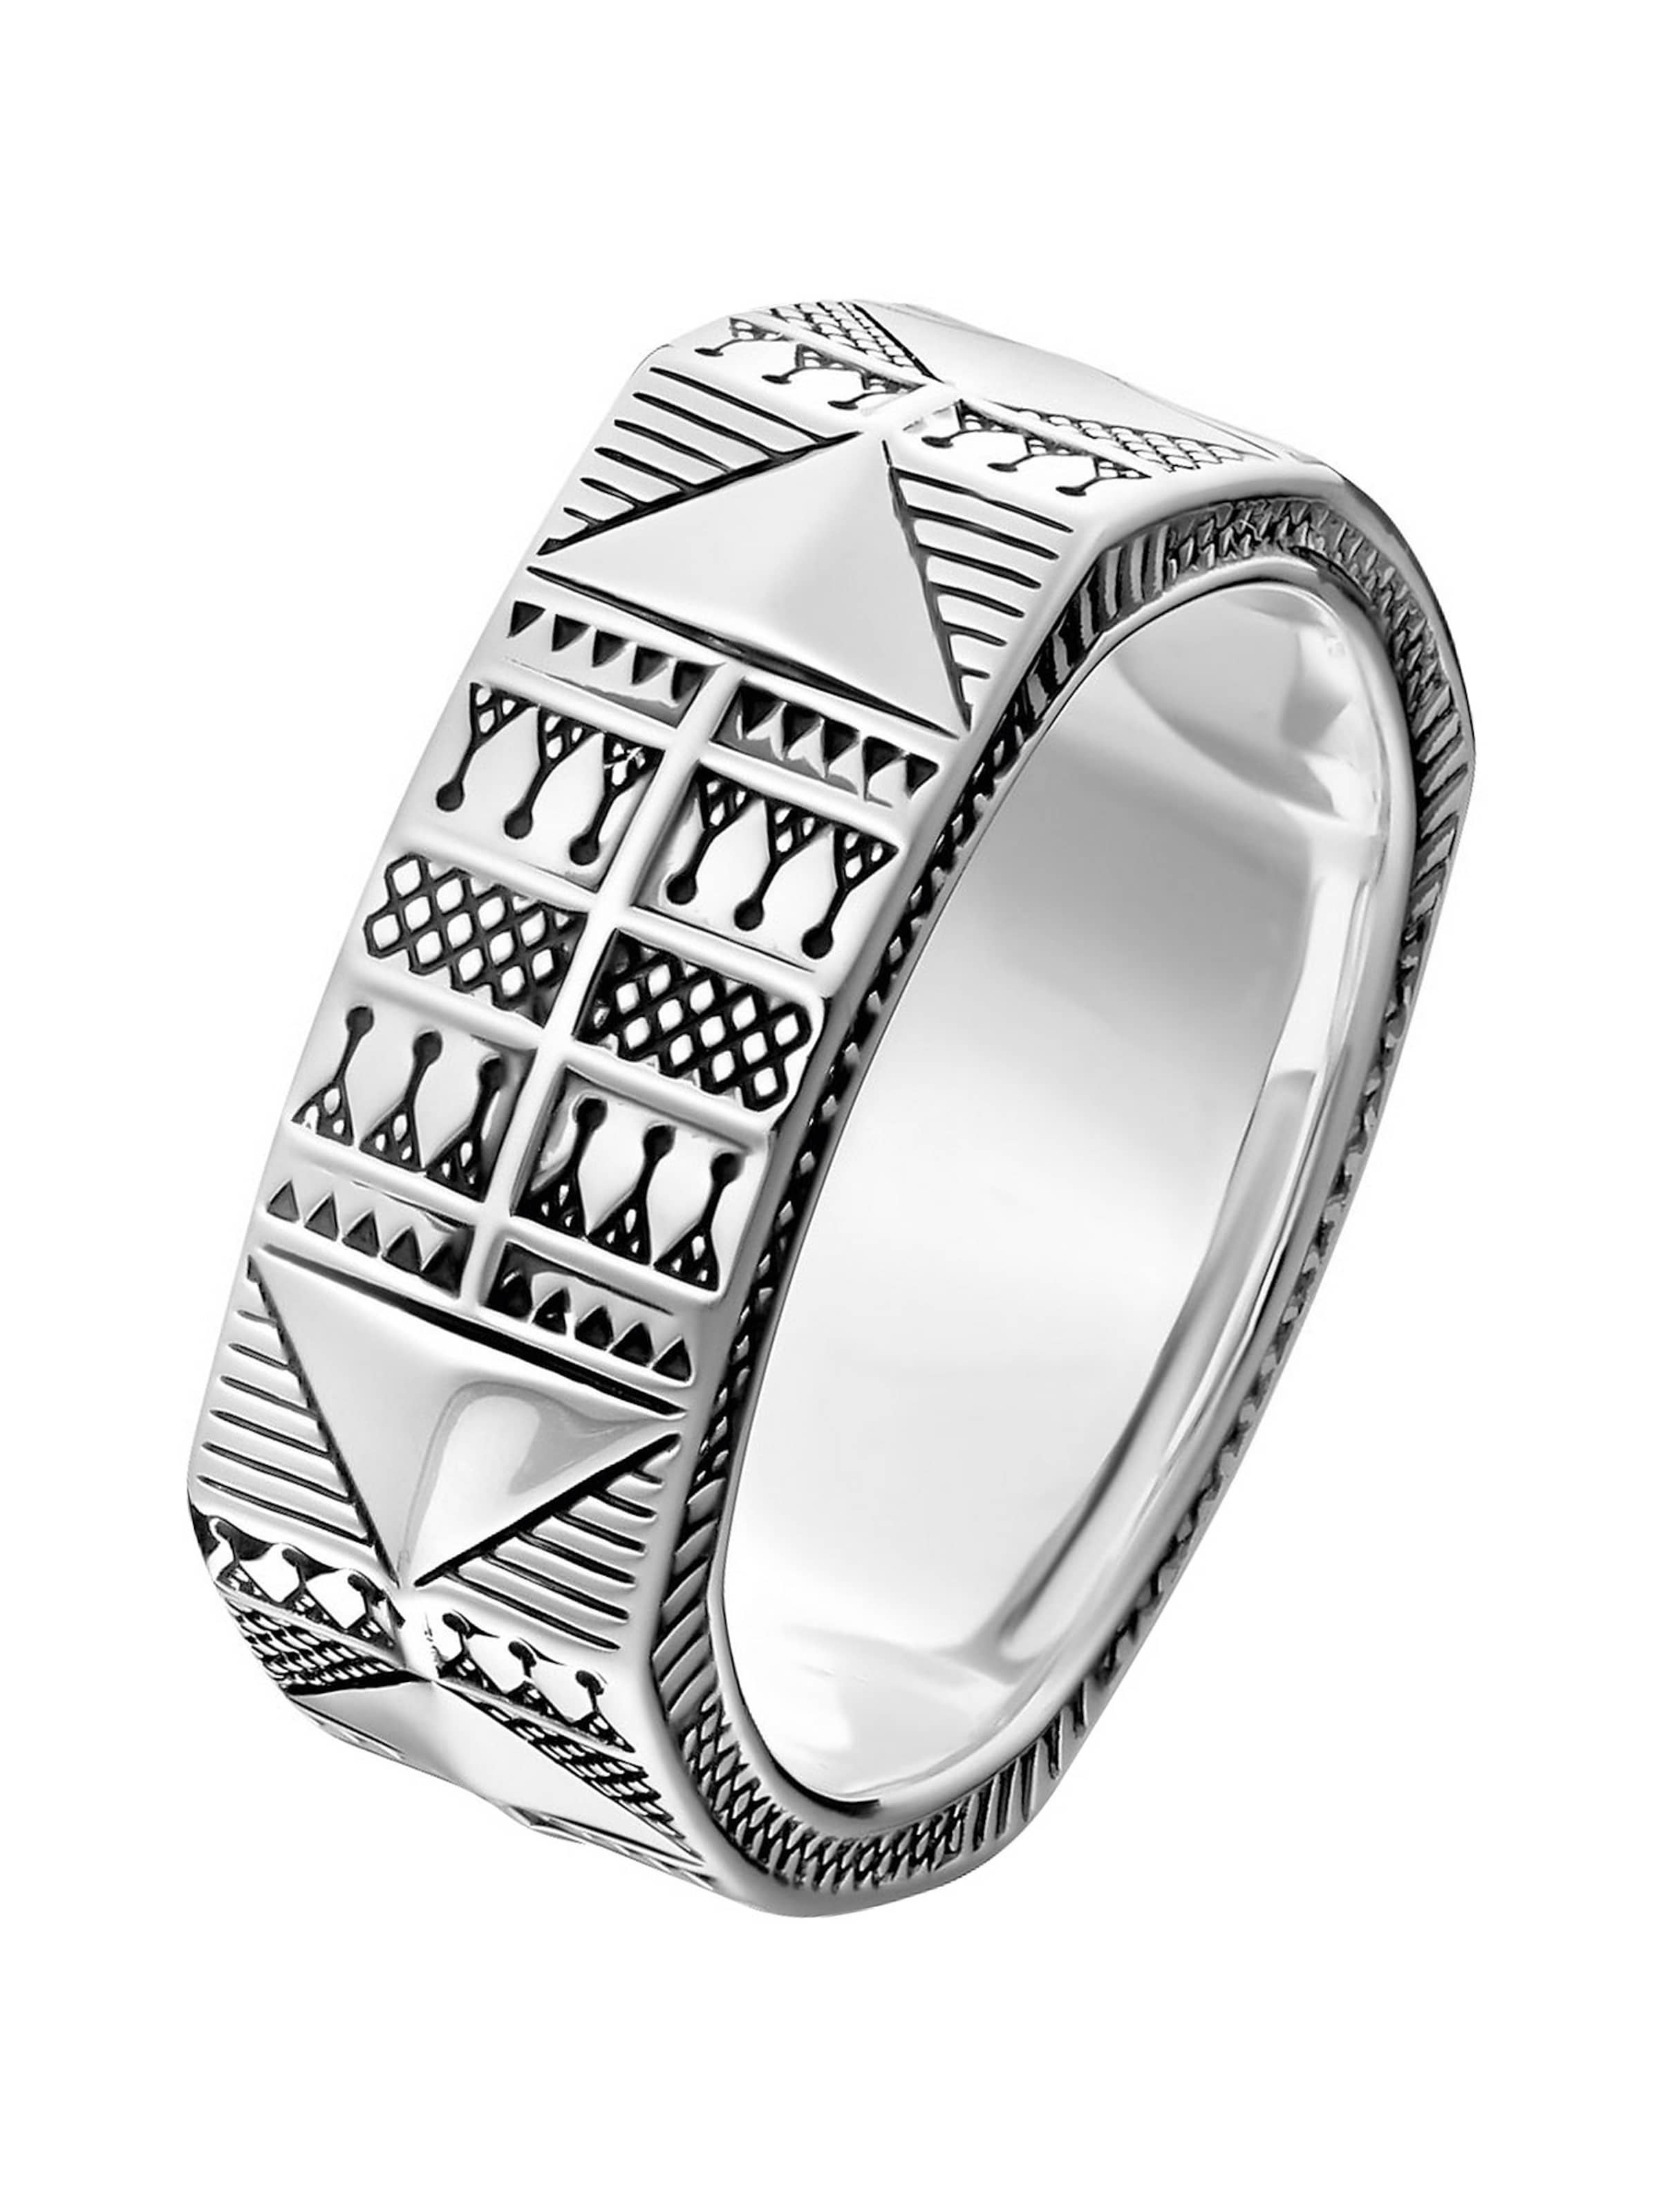 In Silber Thomas Ring In Silber Thomas Ring Sabo Sabo 4S5RLqc3Aj